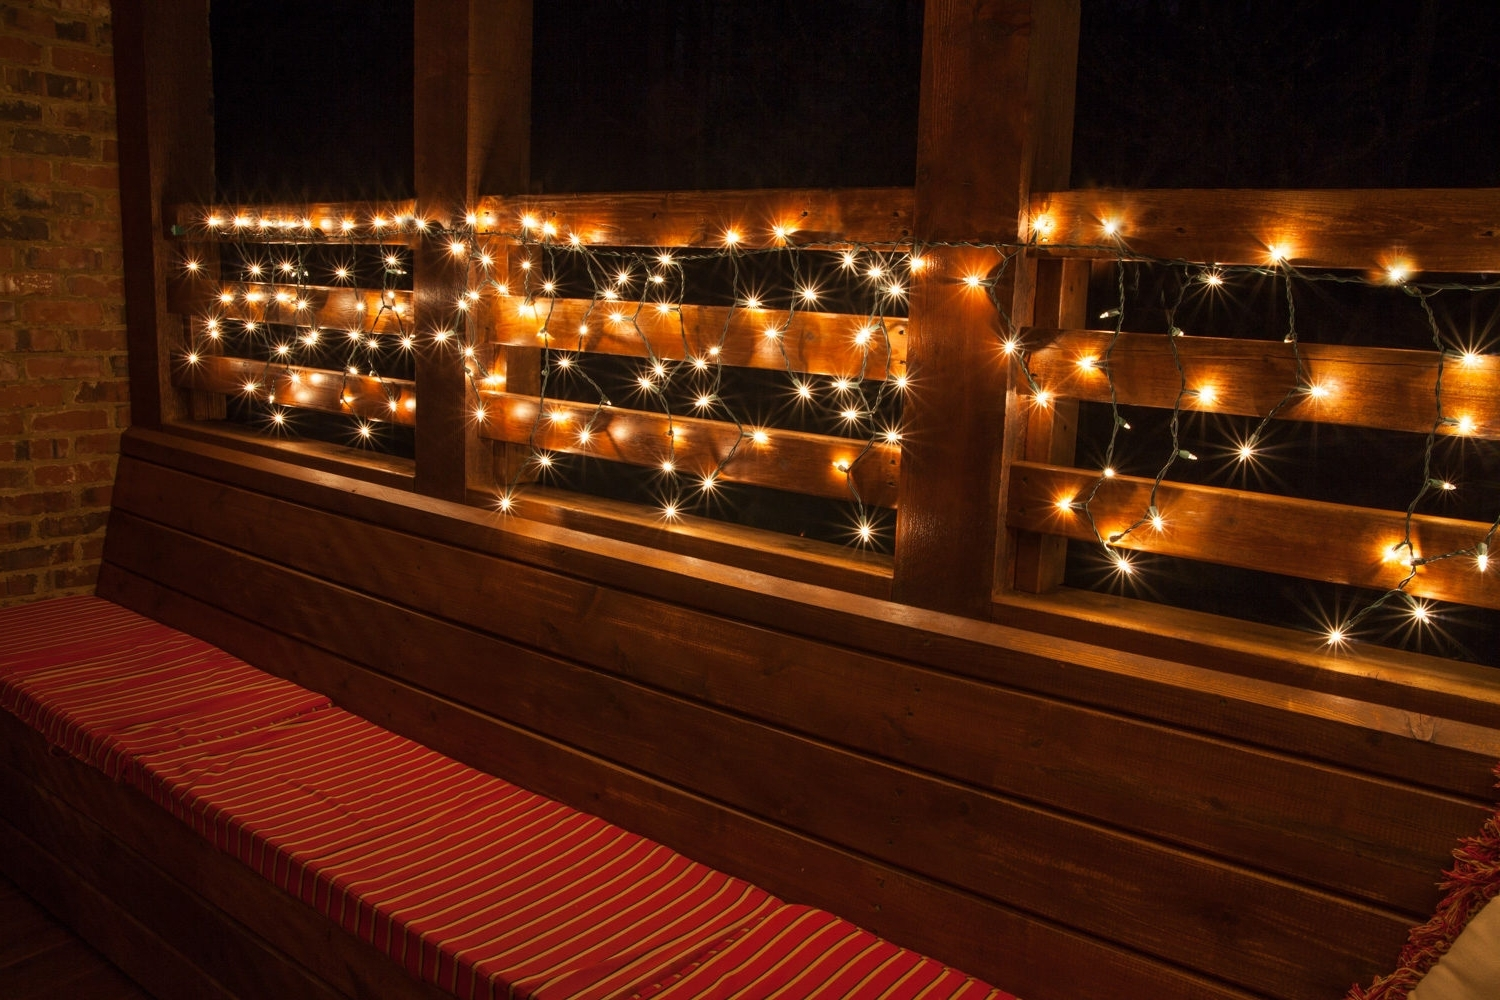 Deck Lighting Ideas With Brilliant Results! – Yard Envy With Regard To Best And Newest Outdoor Hanging Icicle Lights (View 4 of 20)